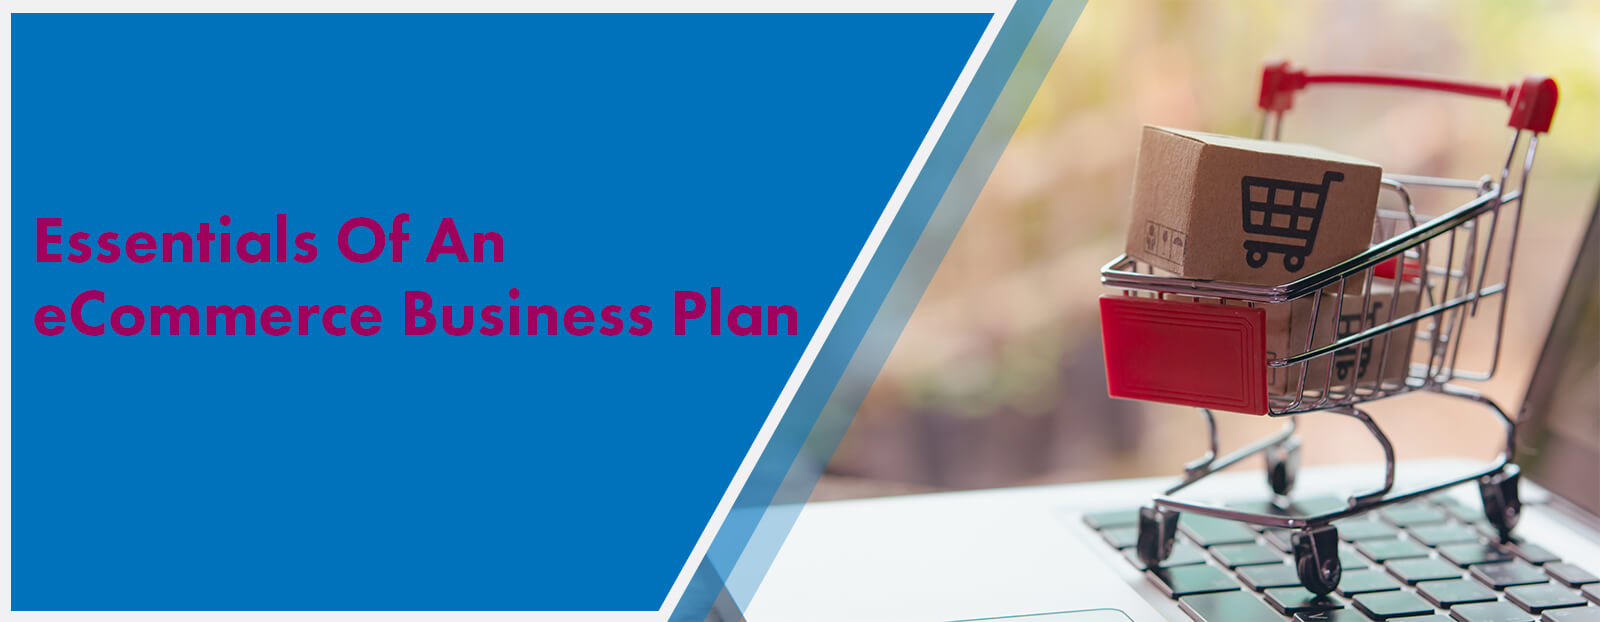 Essentials Of An eCommerce Business Plan